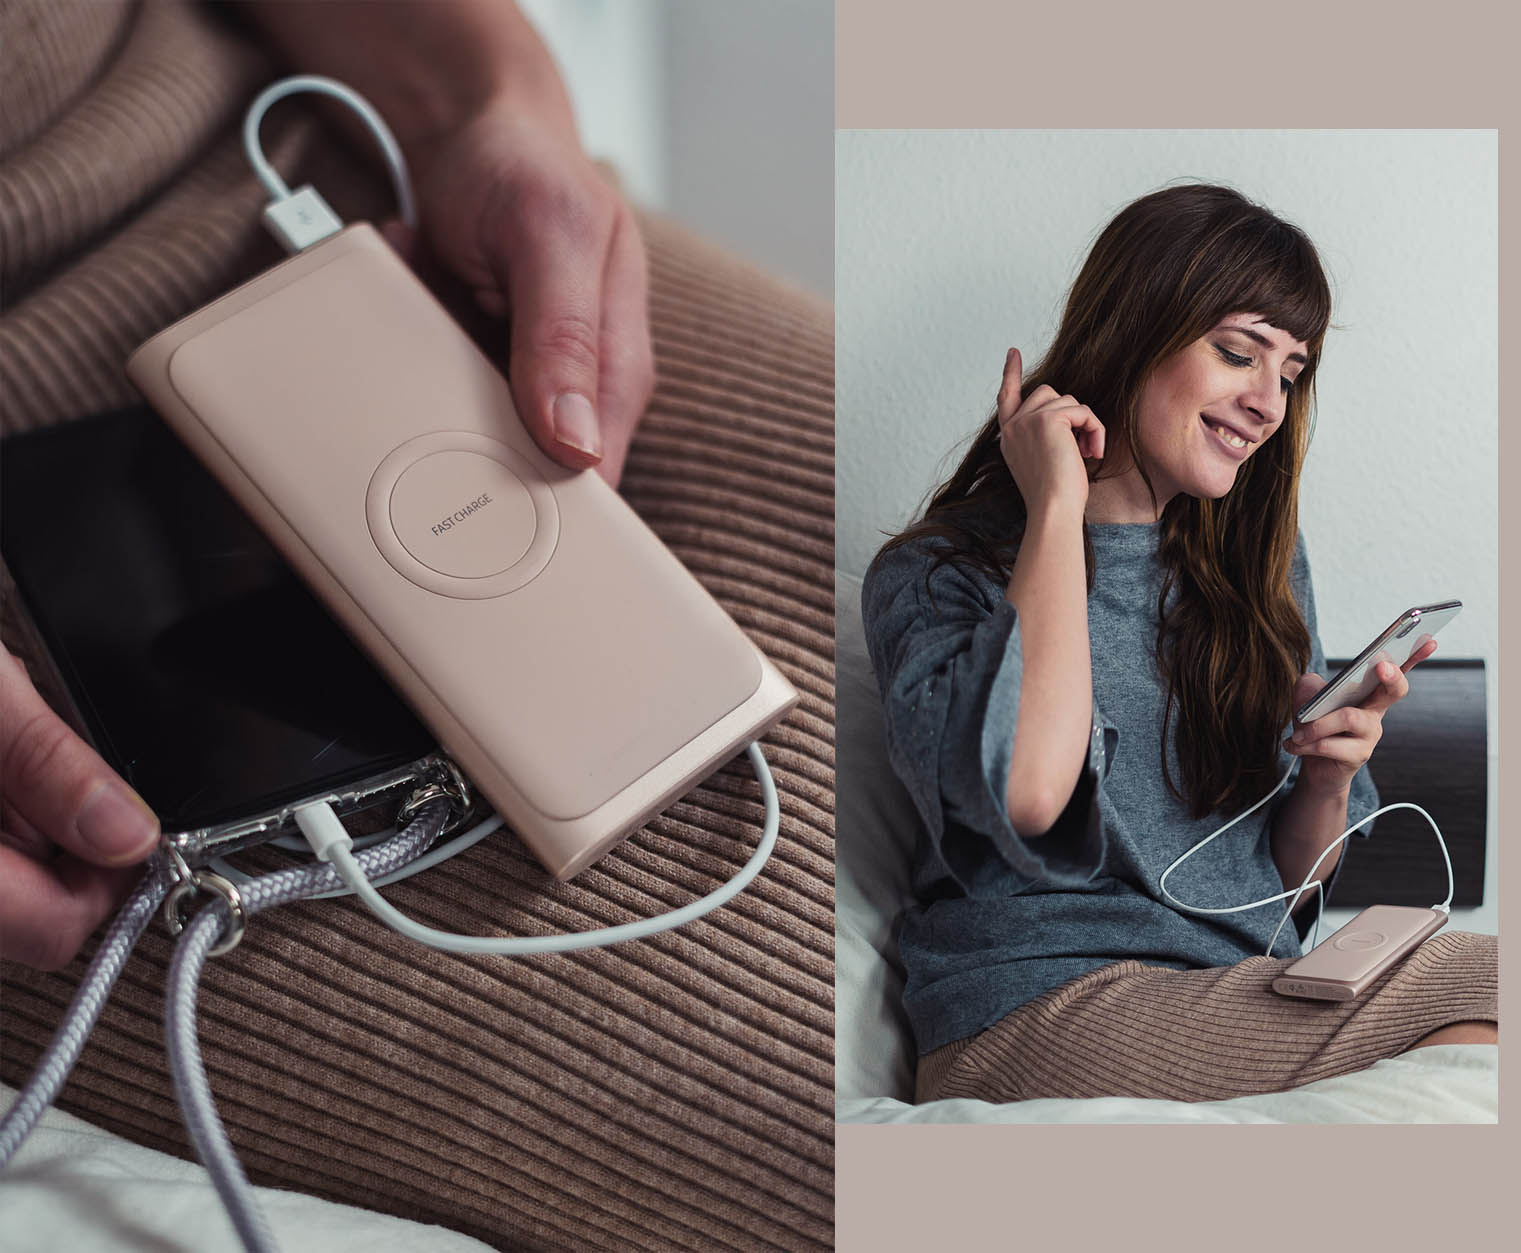 rosa Powerbank